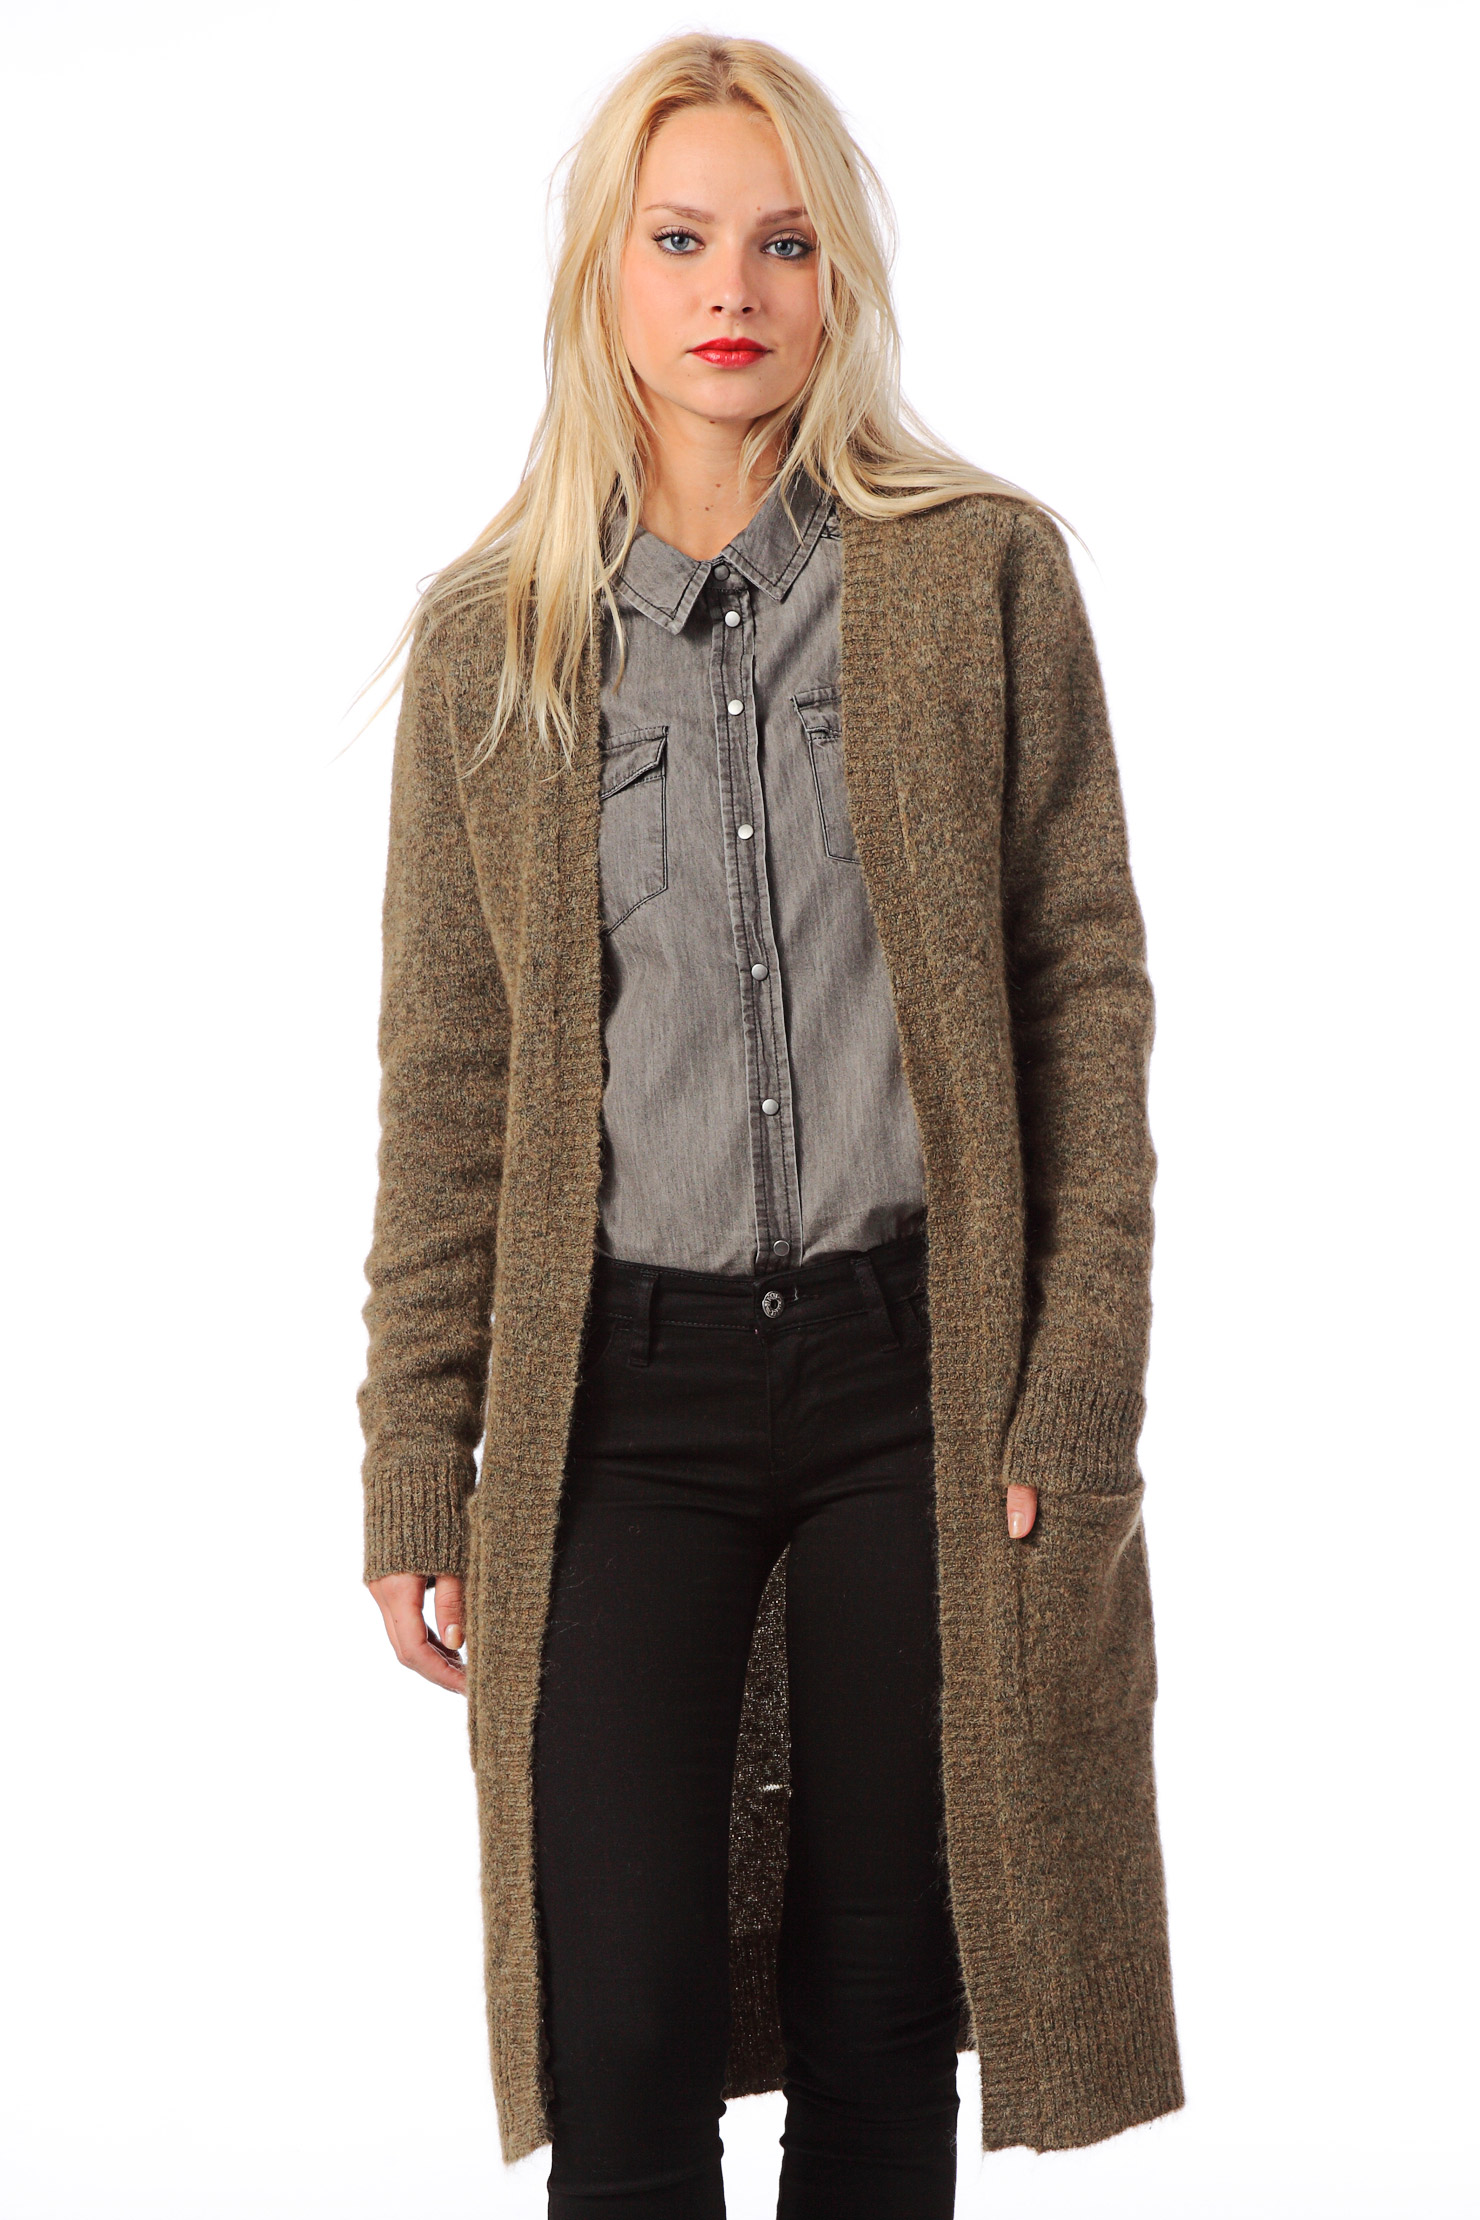 Face winter in style with a Brown Cardigan Sweater, a Ladies Brown Cardigan Sweater, Men's Brown Cardigan Sweater or Kids Brown Cardigan Sweater from Macy's.